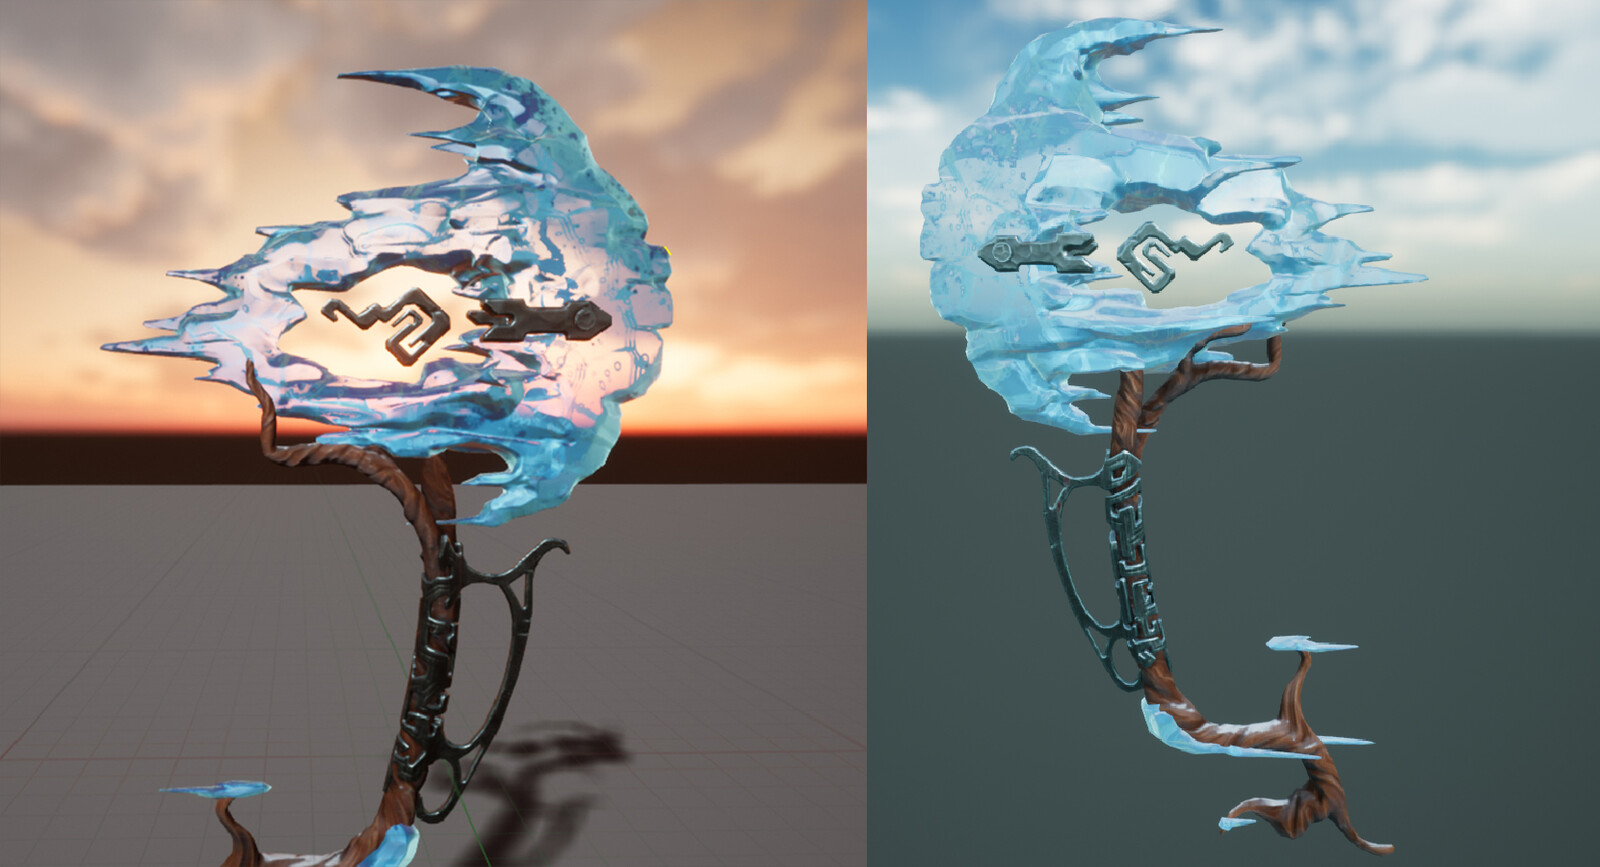 Some screens from UE4 showing the asset in different lighting scenarios. The ice material has some paralax in the cracks/bubbles.